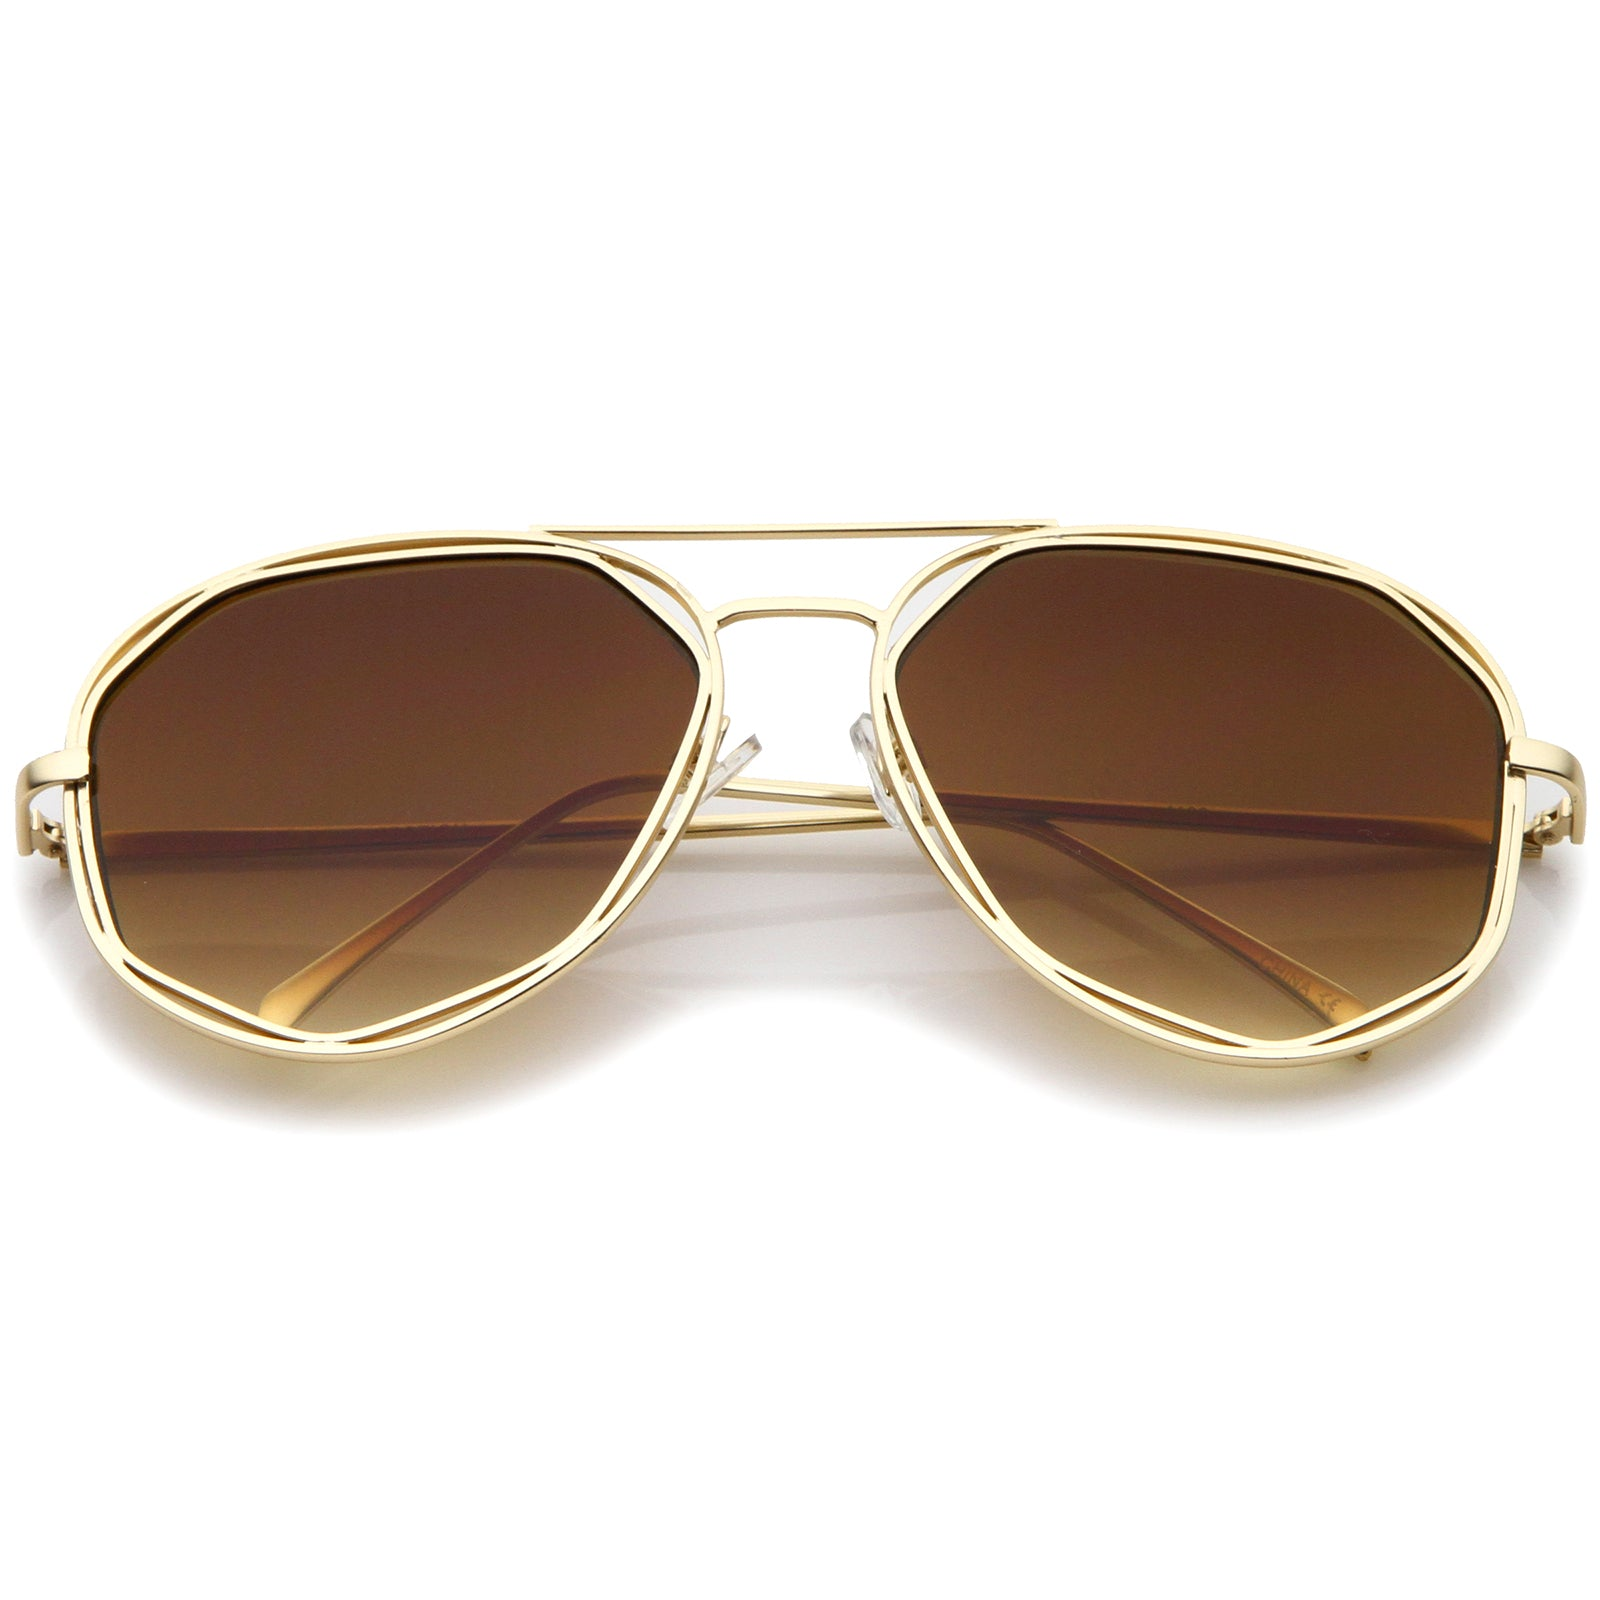 Geometric Hexagonal Metal Frame Neutral Colored Flat Lens Aviator Sunglasses 60mm - sunglass.la - 1